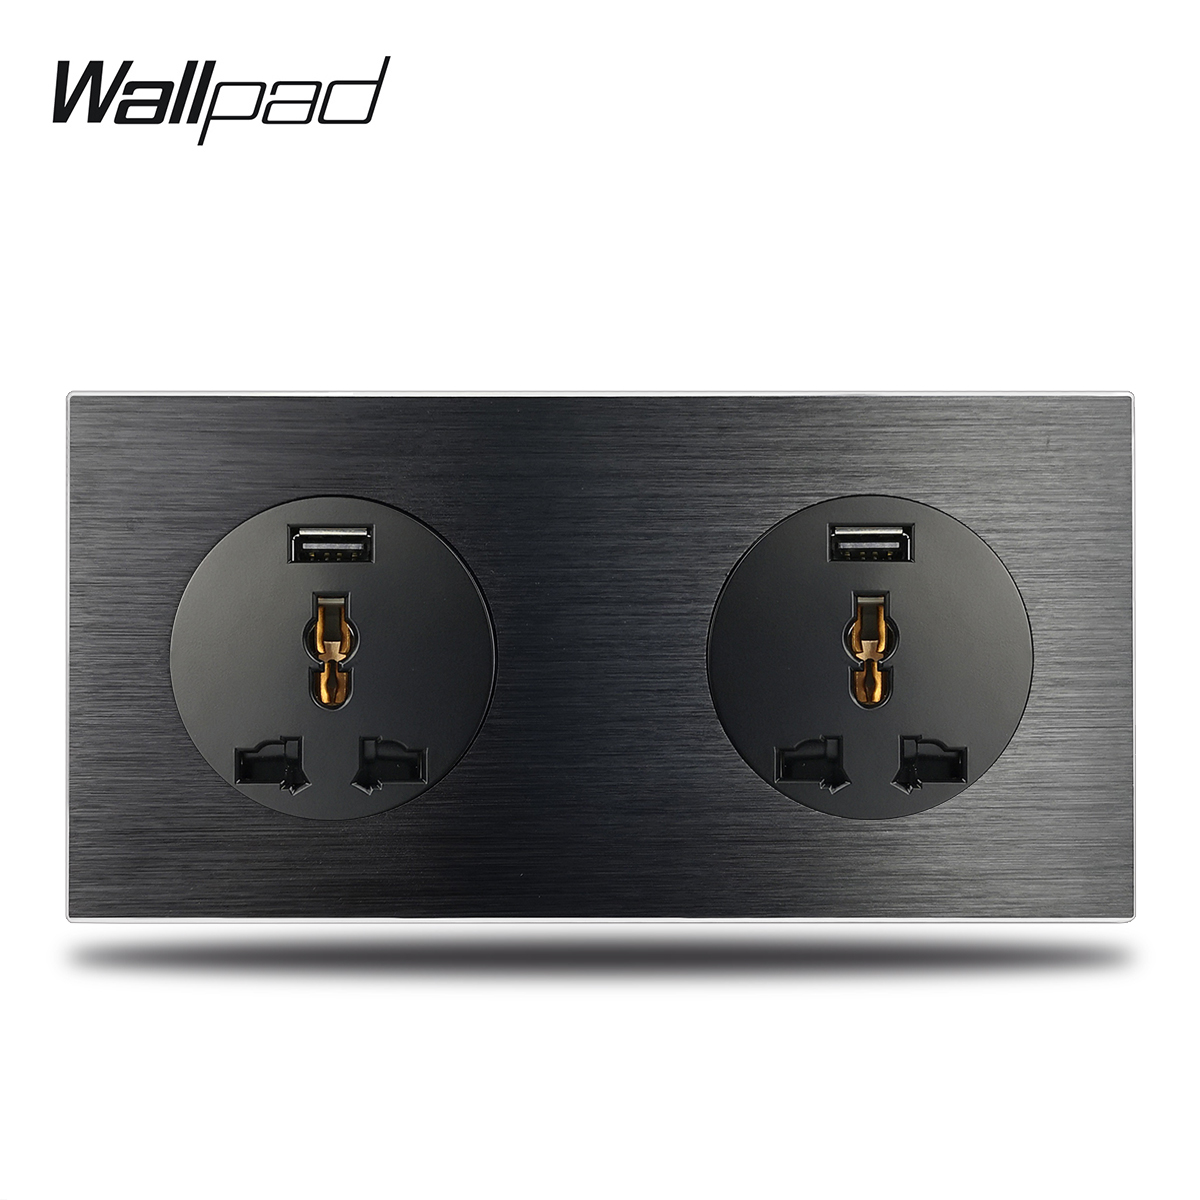 2.1A Fast Charging USB Socket 2 Way Double Universal Wall Electric Socket with Black Brushed Aluminum Alloy Panel2.1A Fast Charging USB Socket 2 Way Double Universal Wall Electric Socket with Black Brushed Aluminum Alloy Panel